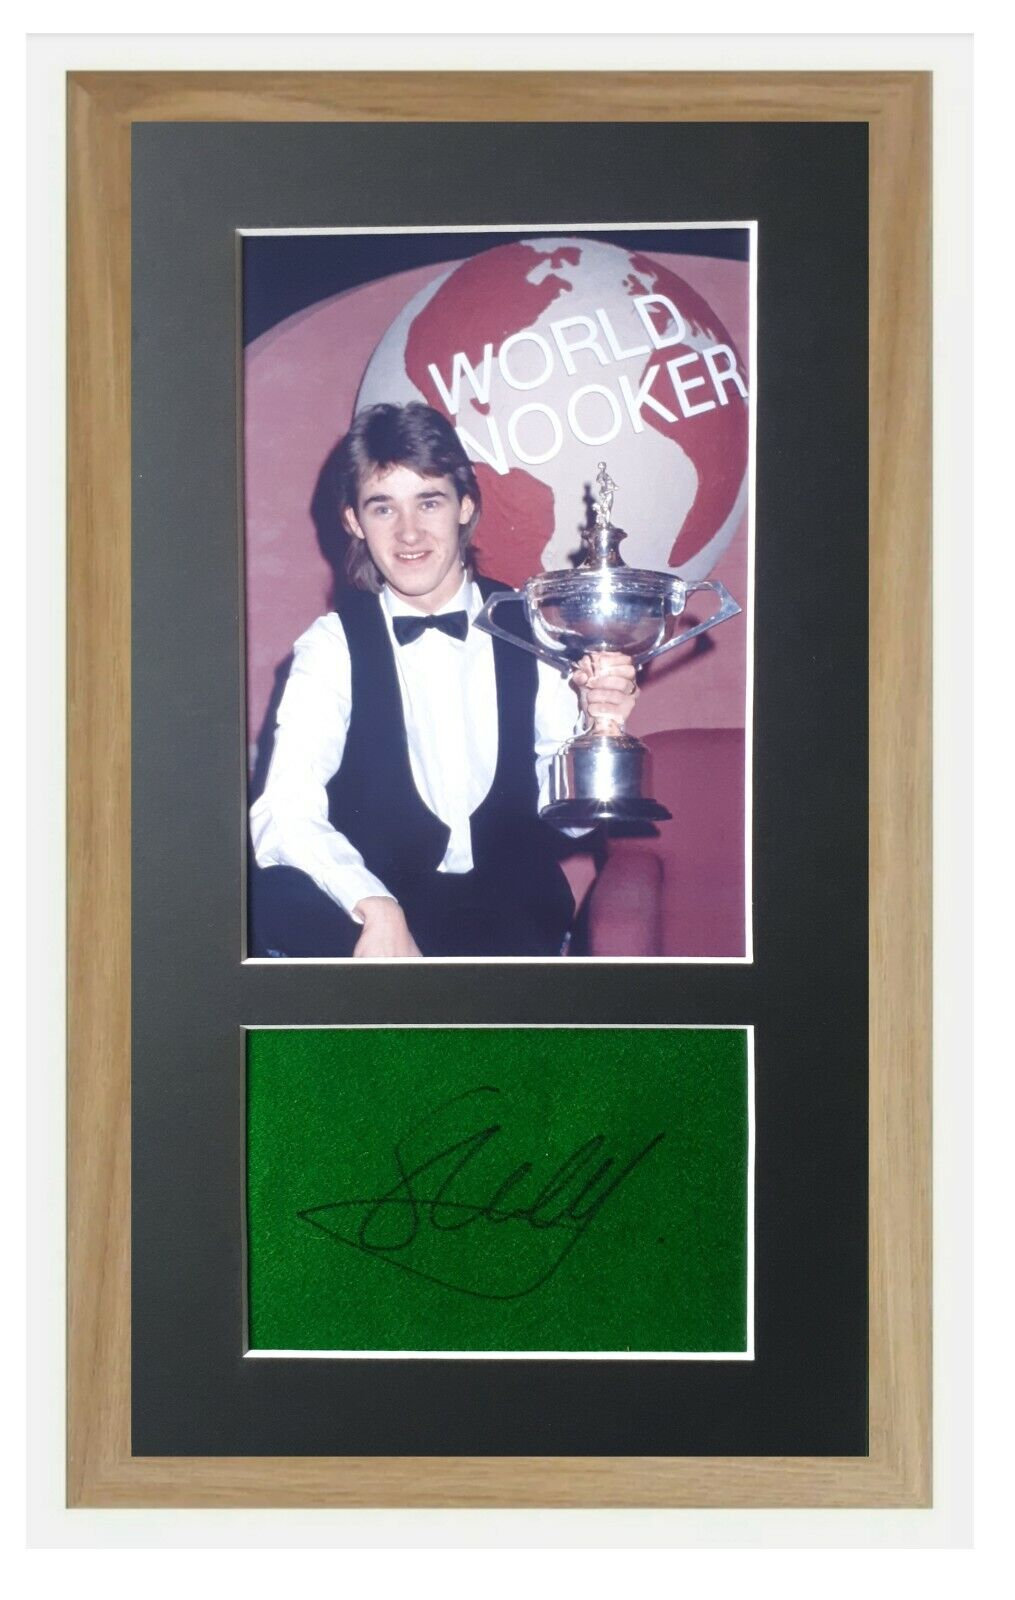 Stephen Hendry Genuine Signed andFramed 380x210 Baize Display, World Snooker Champ